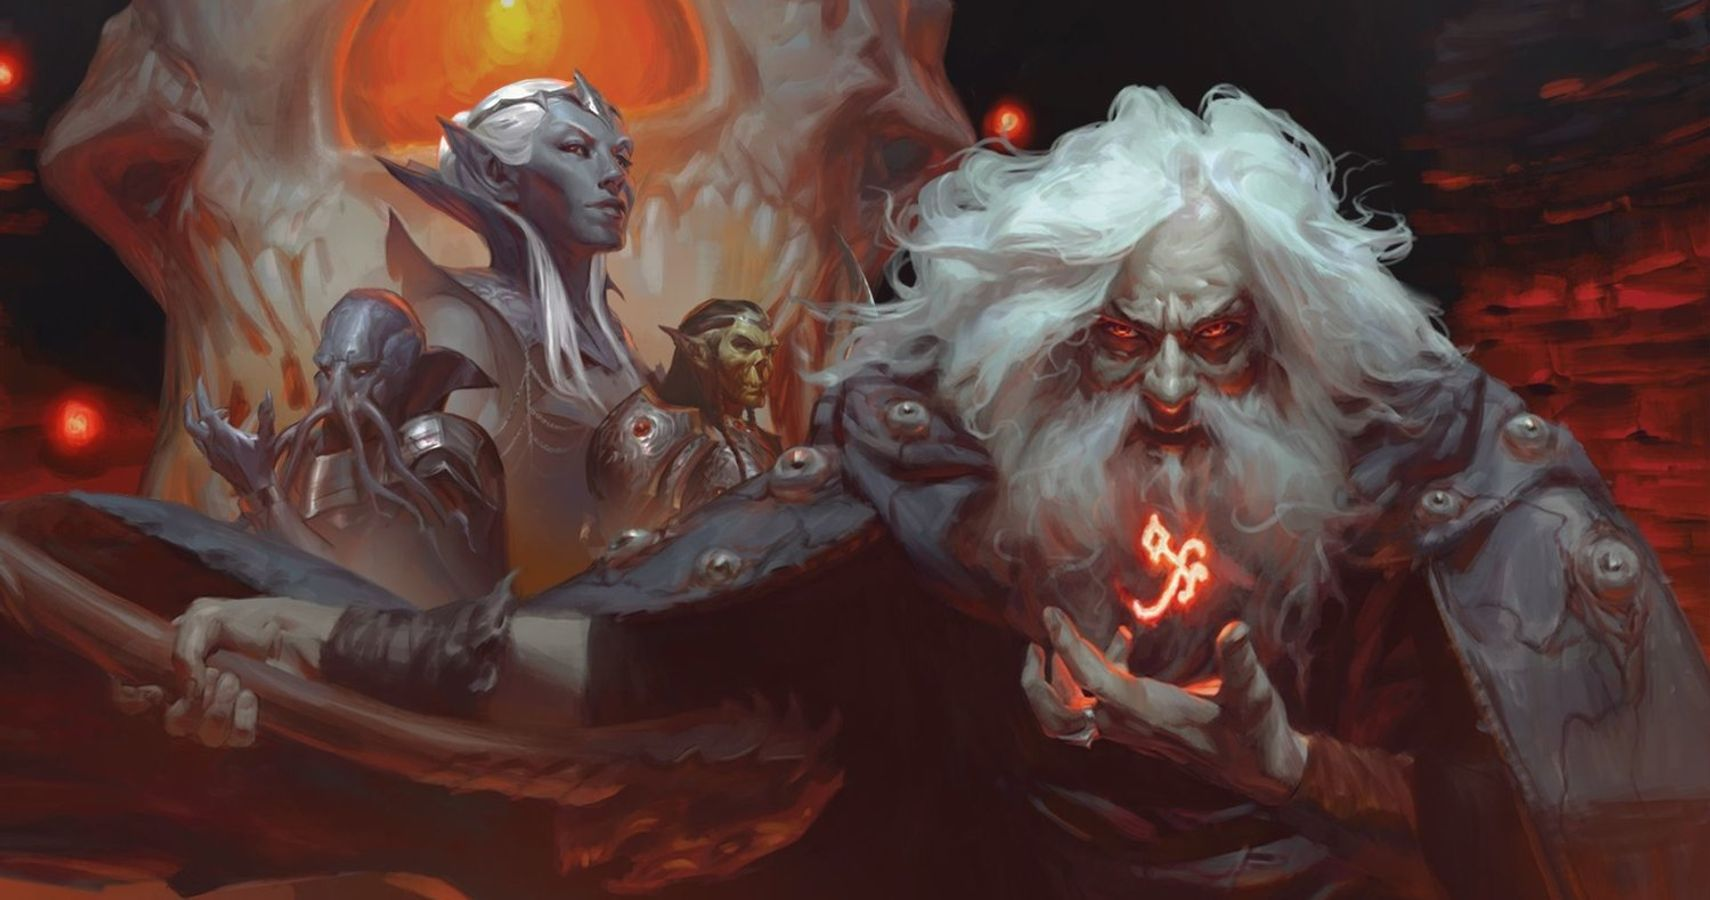 Dungeons And Dragons 5 Overpowered Warlock Spells To Pick 5 To Avoid Once the pact is formed, a talisman of the demon is left behind. overpowered warlock spells